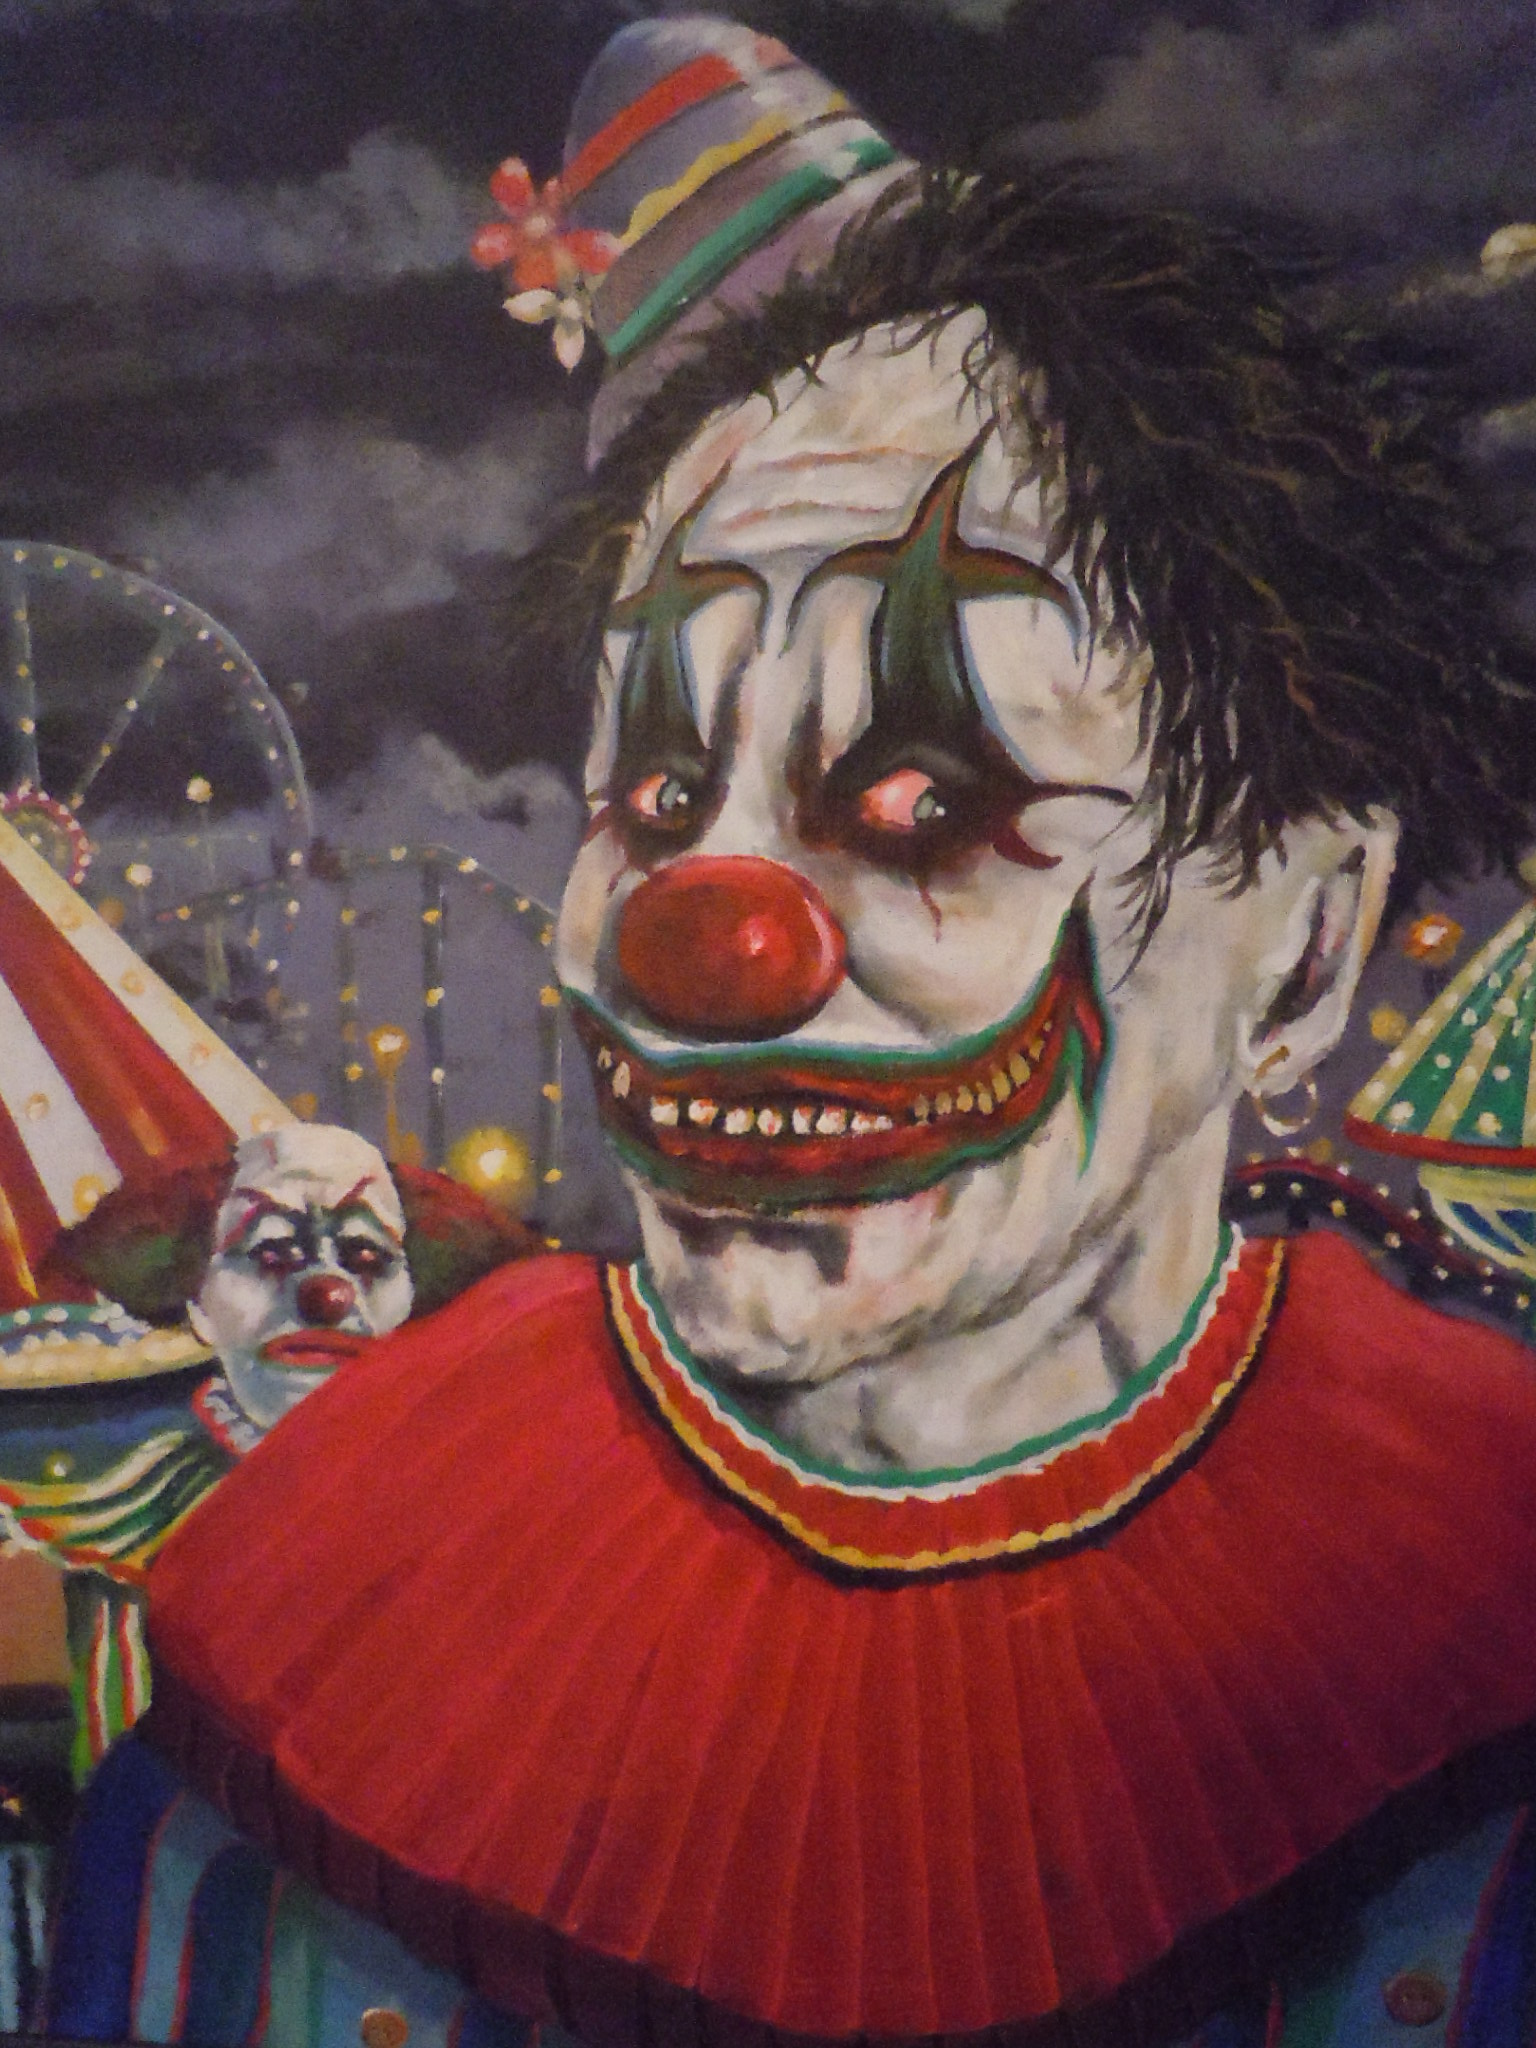 What are some examples of evil clown art?